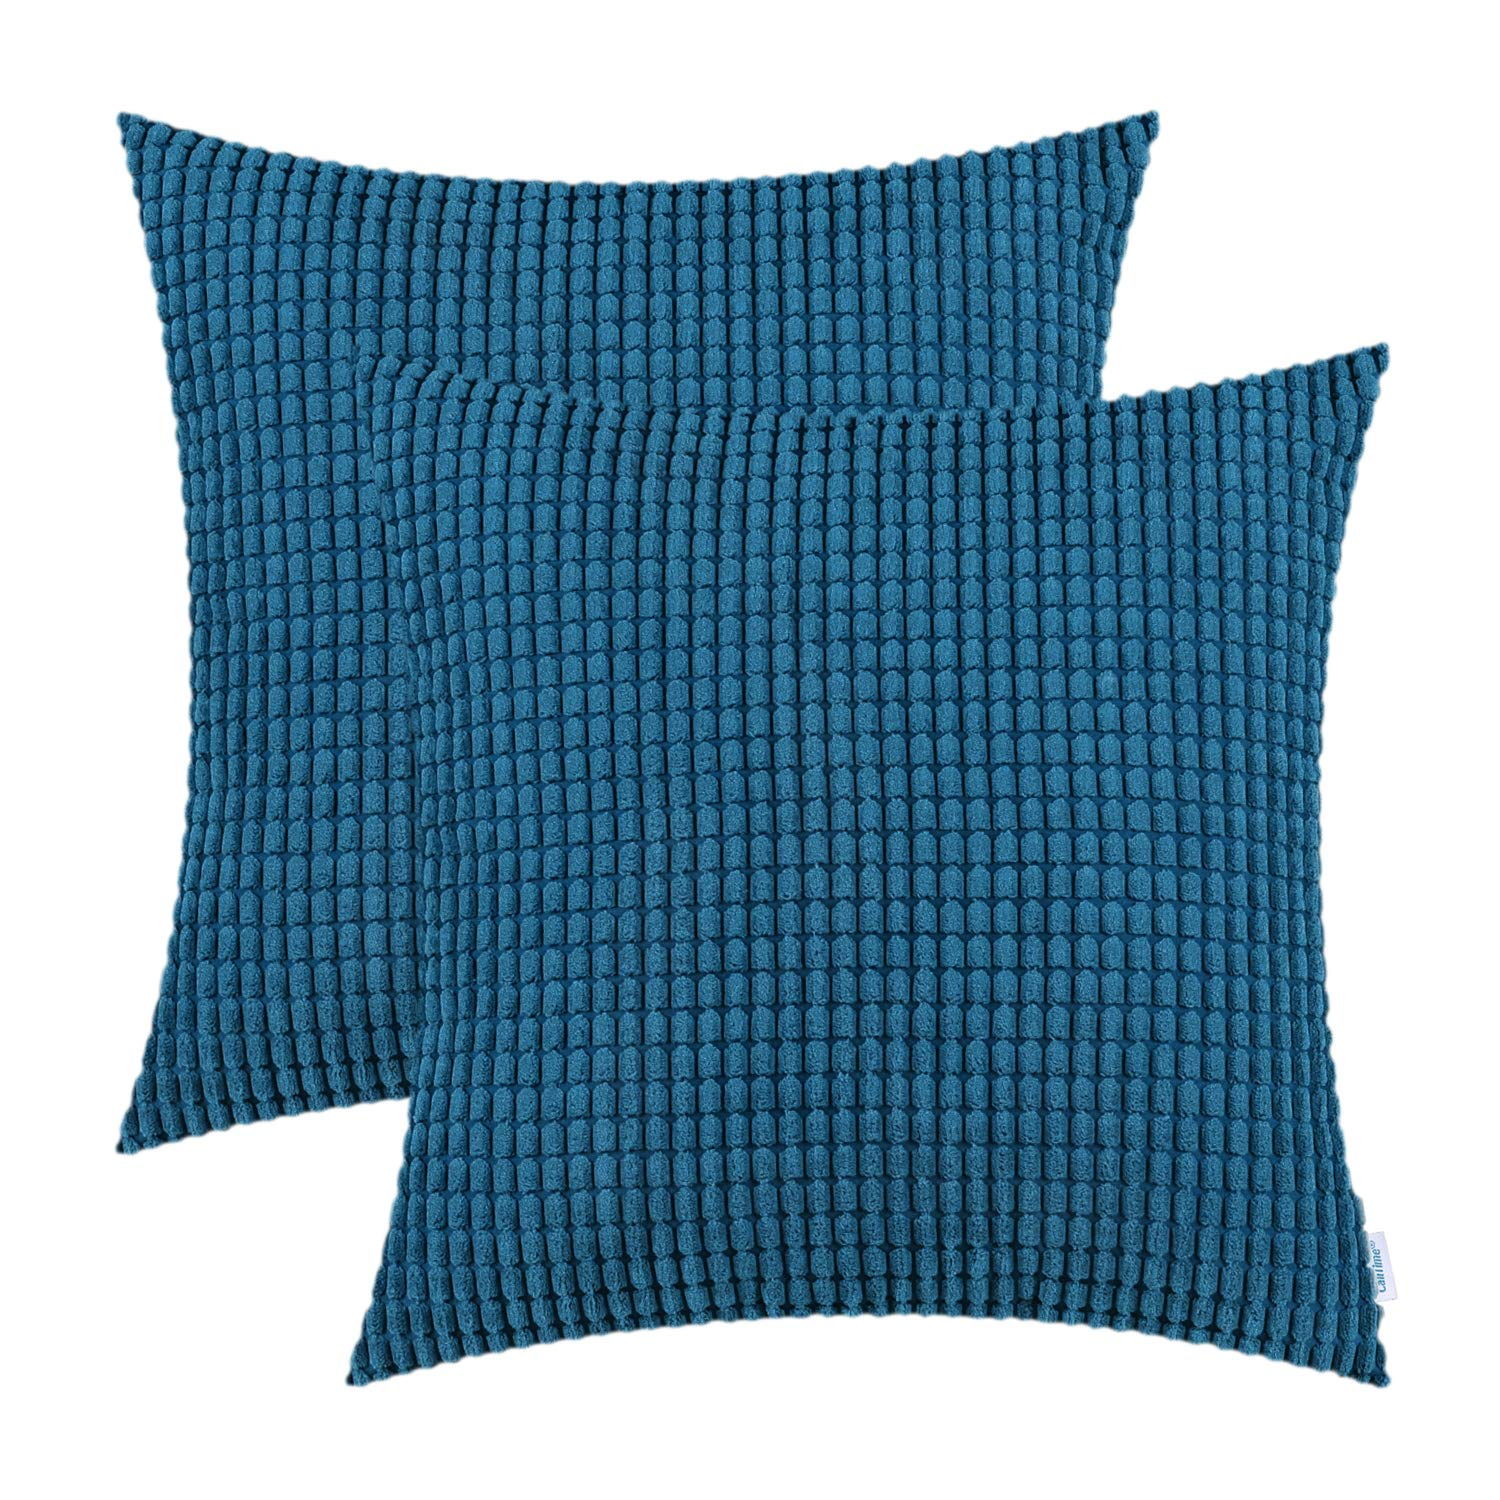 CaliTime Pack of 2 Comfy Throw Pillow Covers Cases for Couch Sofa Bed Decoration Comfortable Supersoft Corduroy Corn Striped Both Sides 18 X 18 Inches Ocean Blue